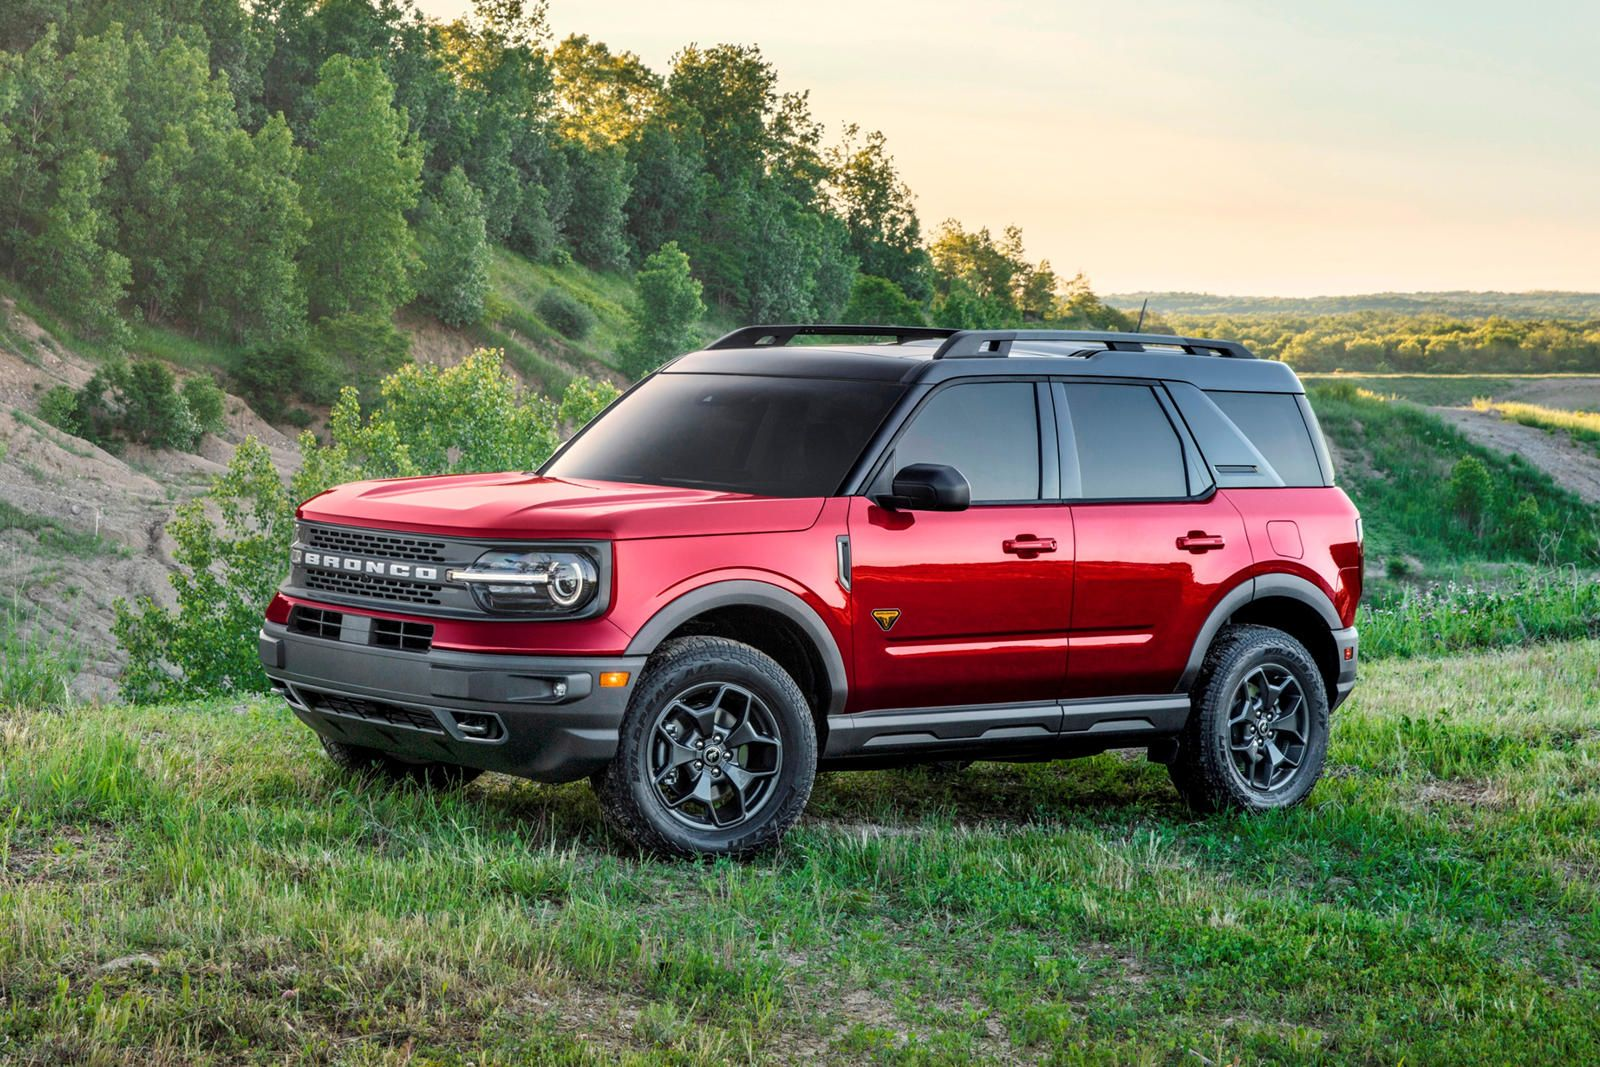 2021 Ford Bronco Sport First Look Review Bronco Lite The Iconic Bronco Look In A More Road Friendly Package In 2020 Ford Bronco Bronco Sports Small Suv